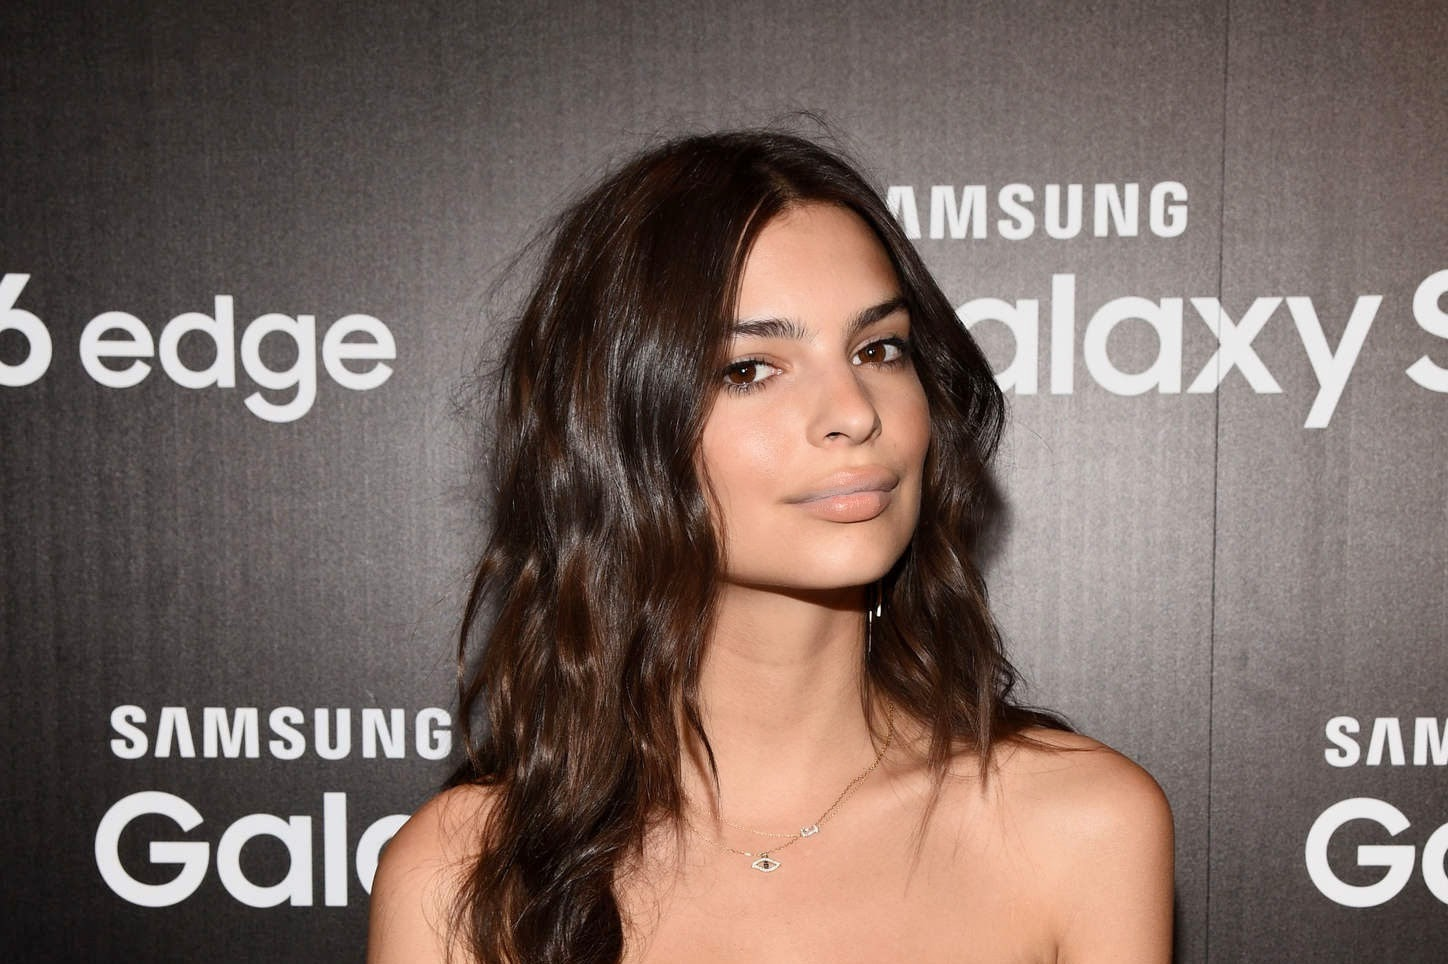 Emily Ratajkowski in a strapless top at the Samsung Studio Launch in LA